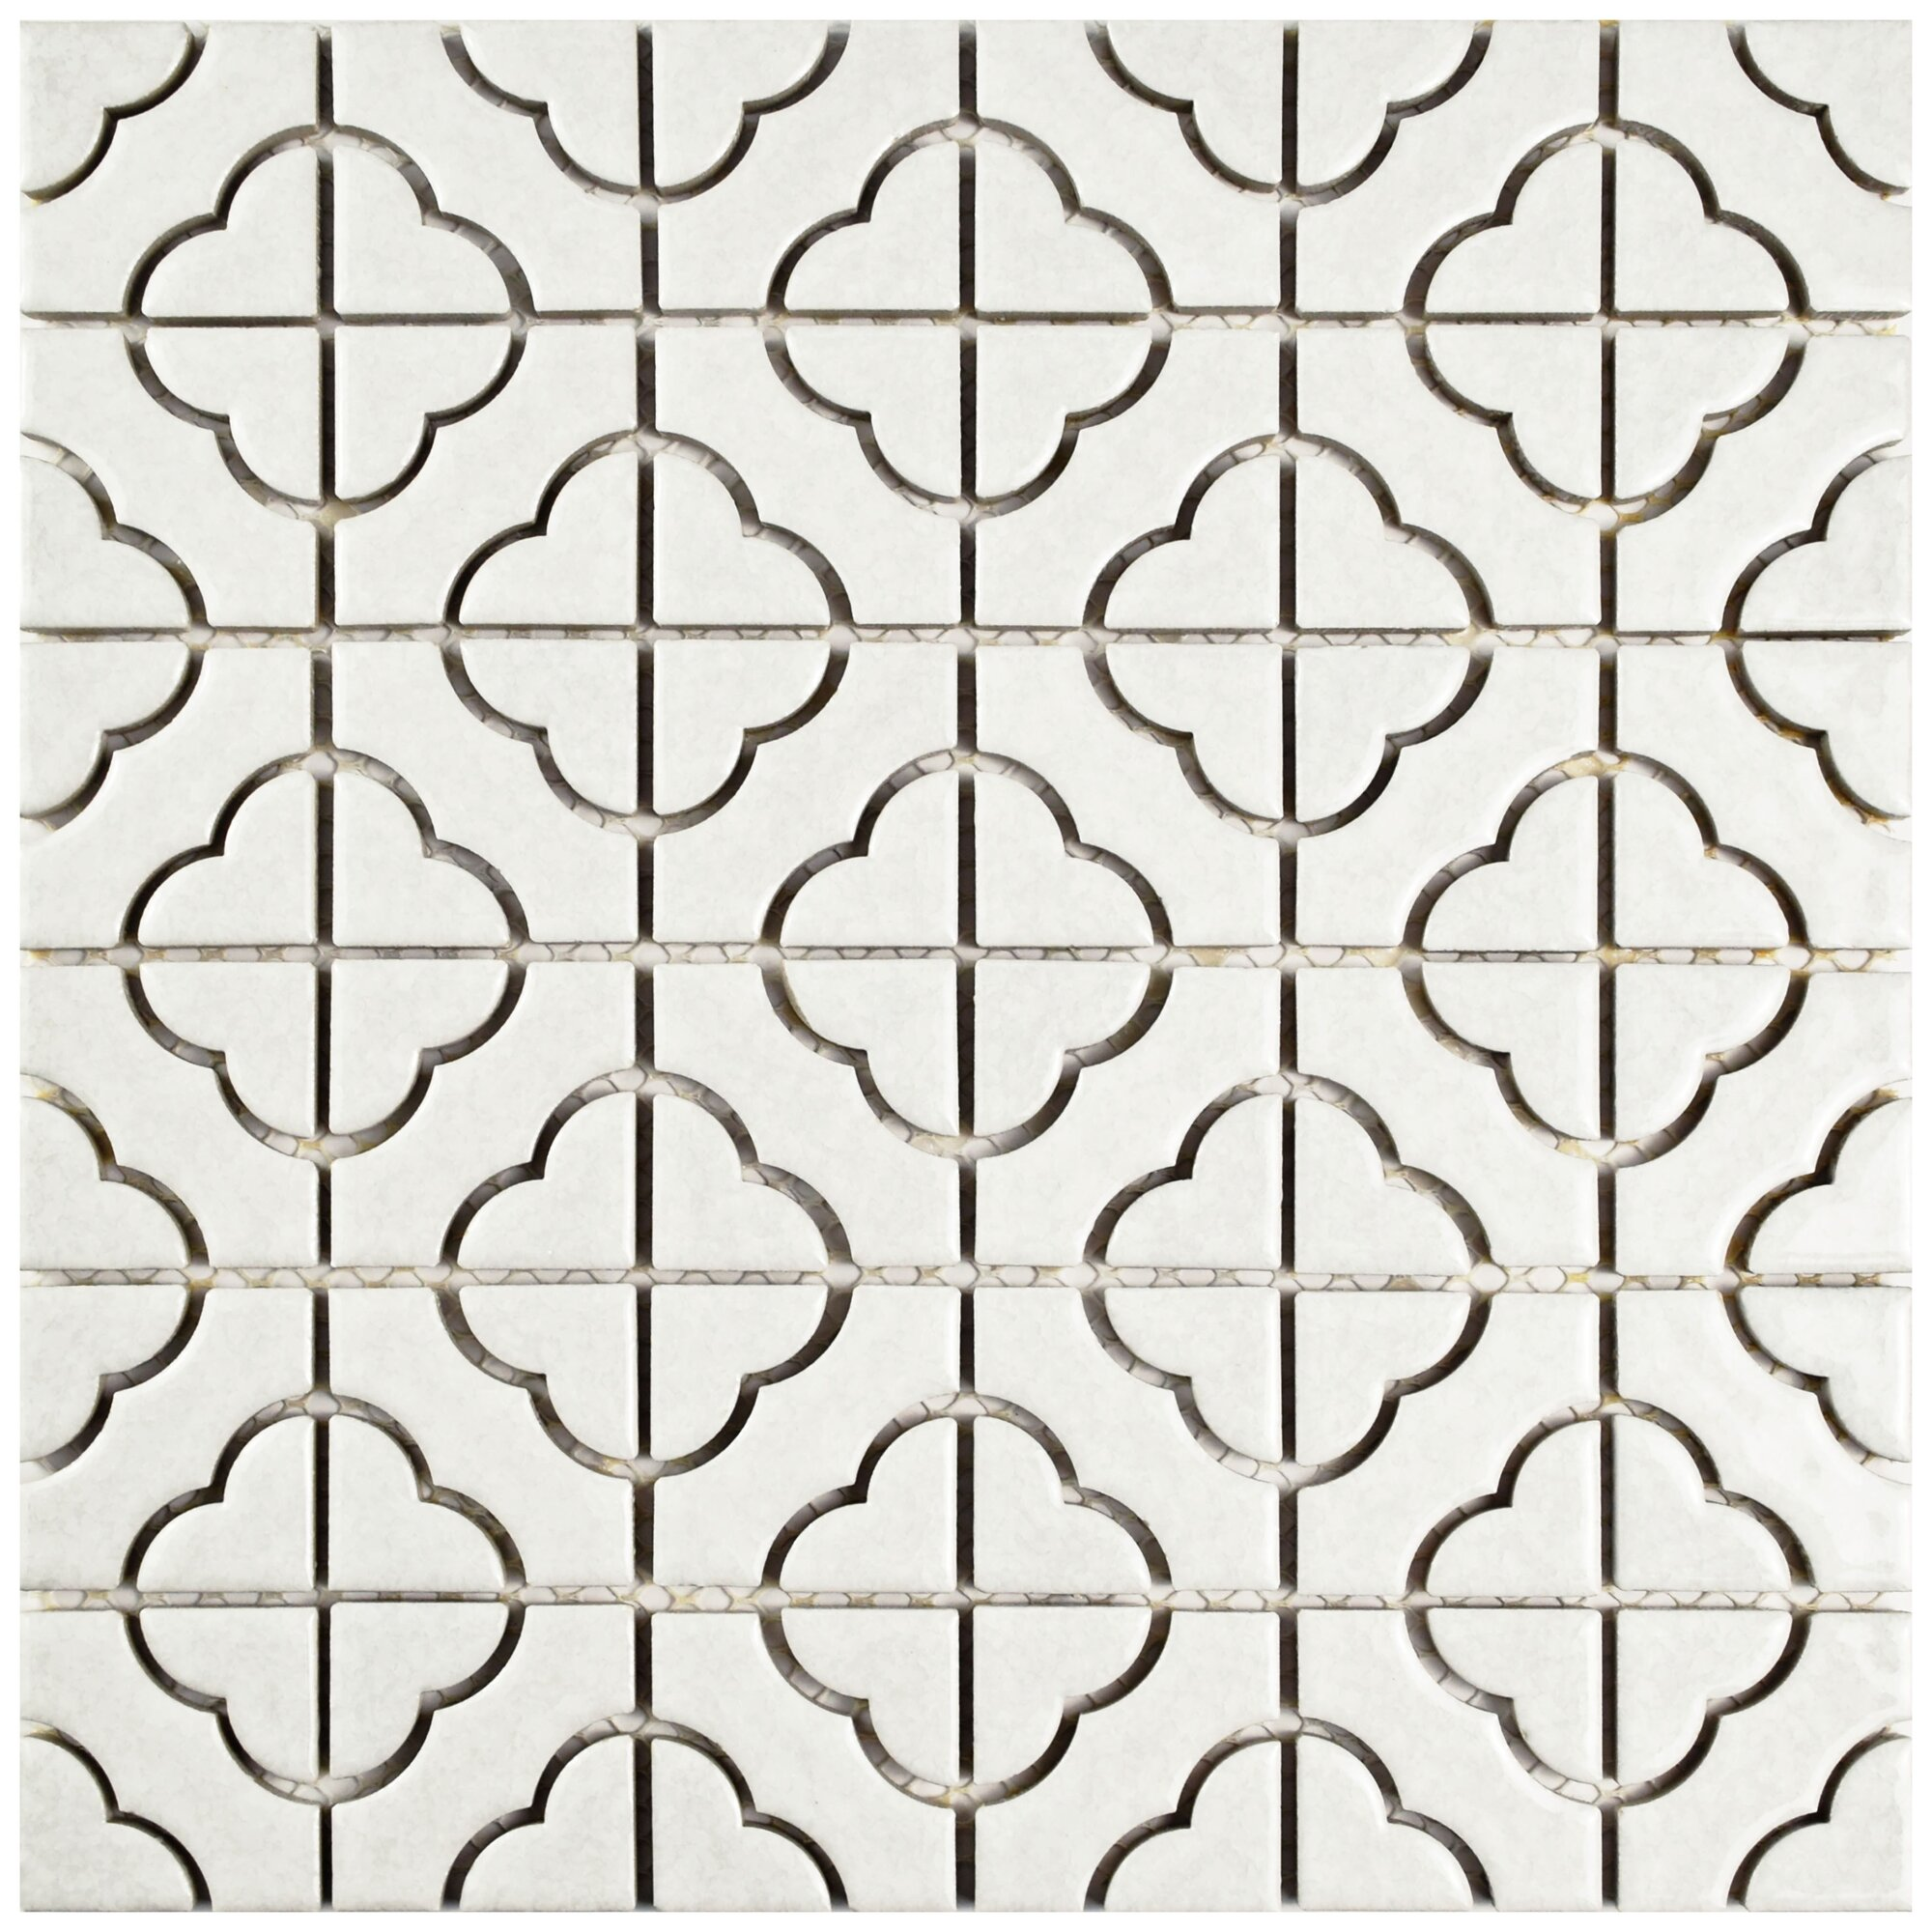 white mosaic tile. dry layout of black and white mosaic tiles with